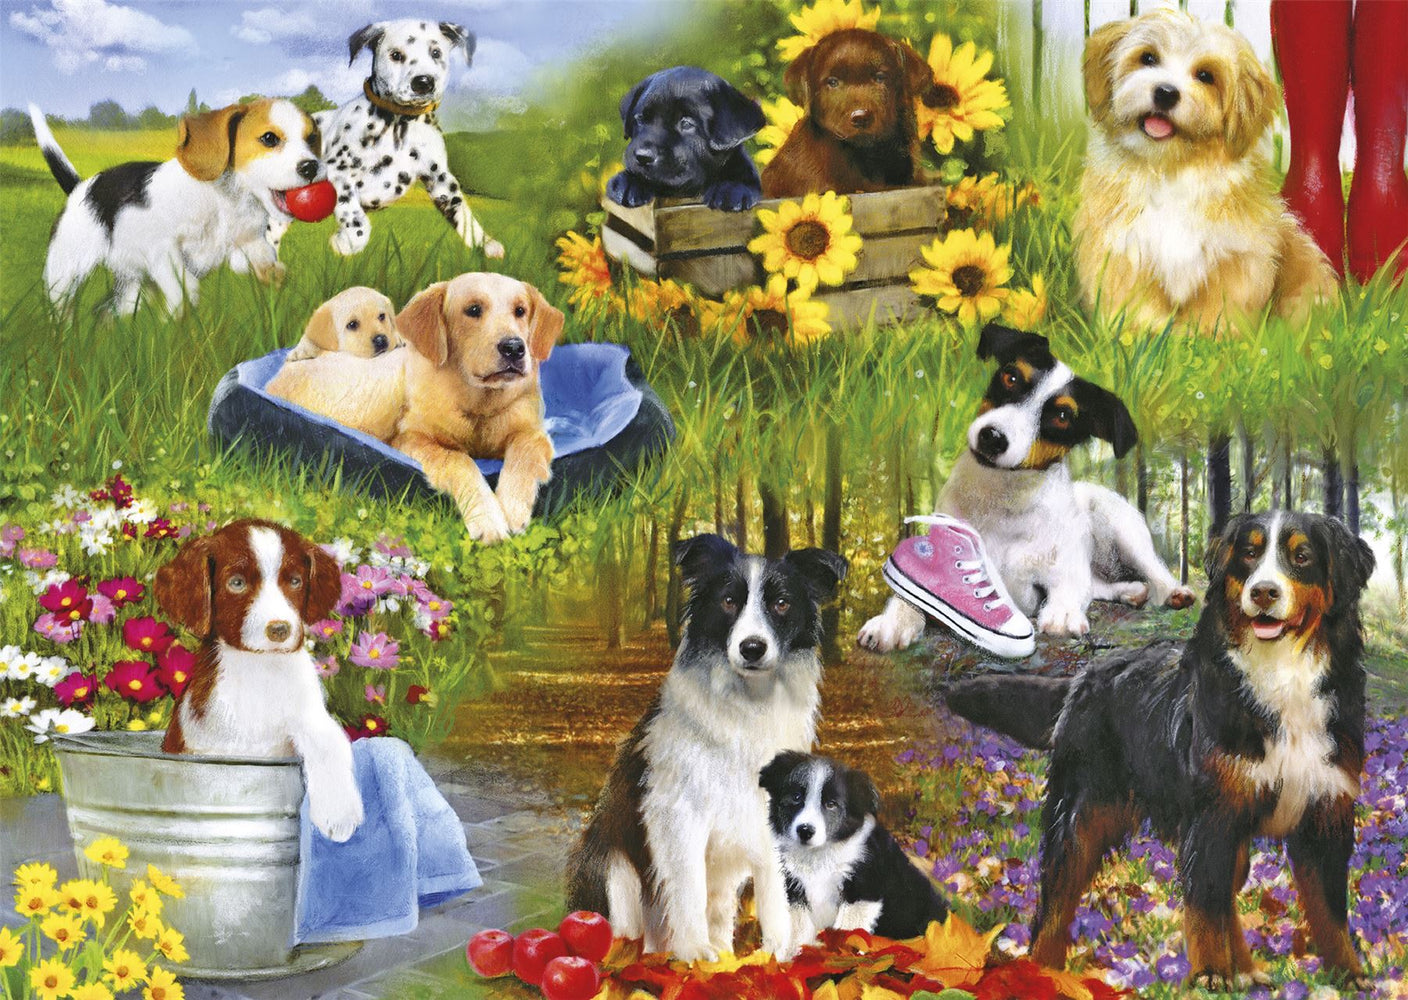 New 2020 Gibsons Playful Pups 500 piece Jigsaw Puzzle - All Jigsaw Puzzles